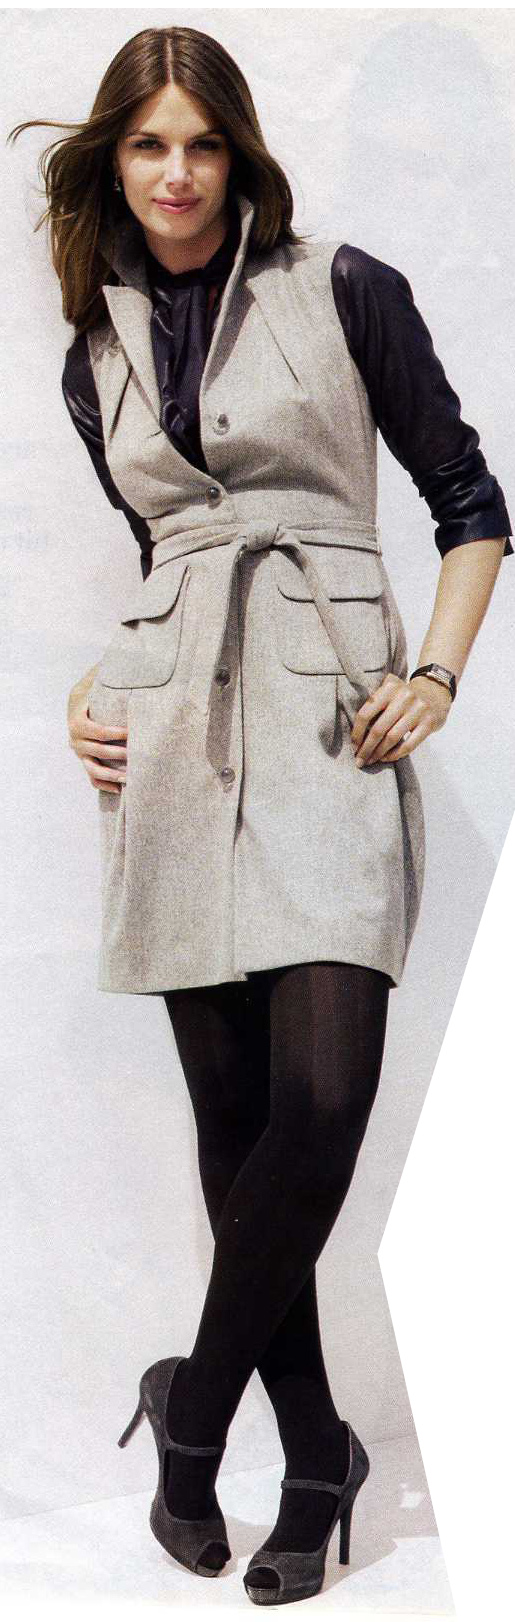 grayl-dress-black-top-blouse-layer-black-tights-gray-shoe-pumps-brun-shirt-howtowear-fashion-style-outfit-fall-winter-work.jpg